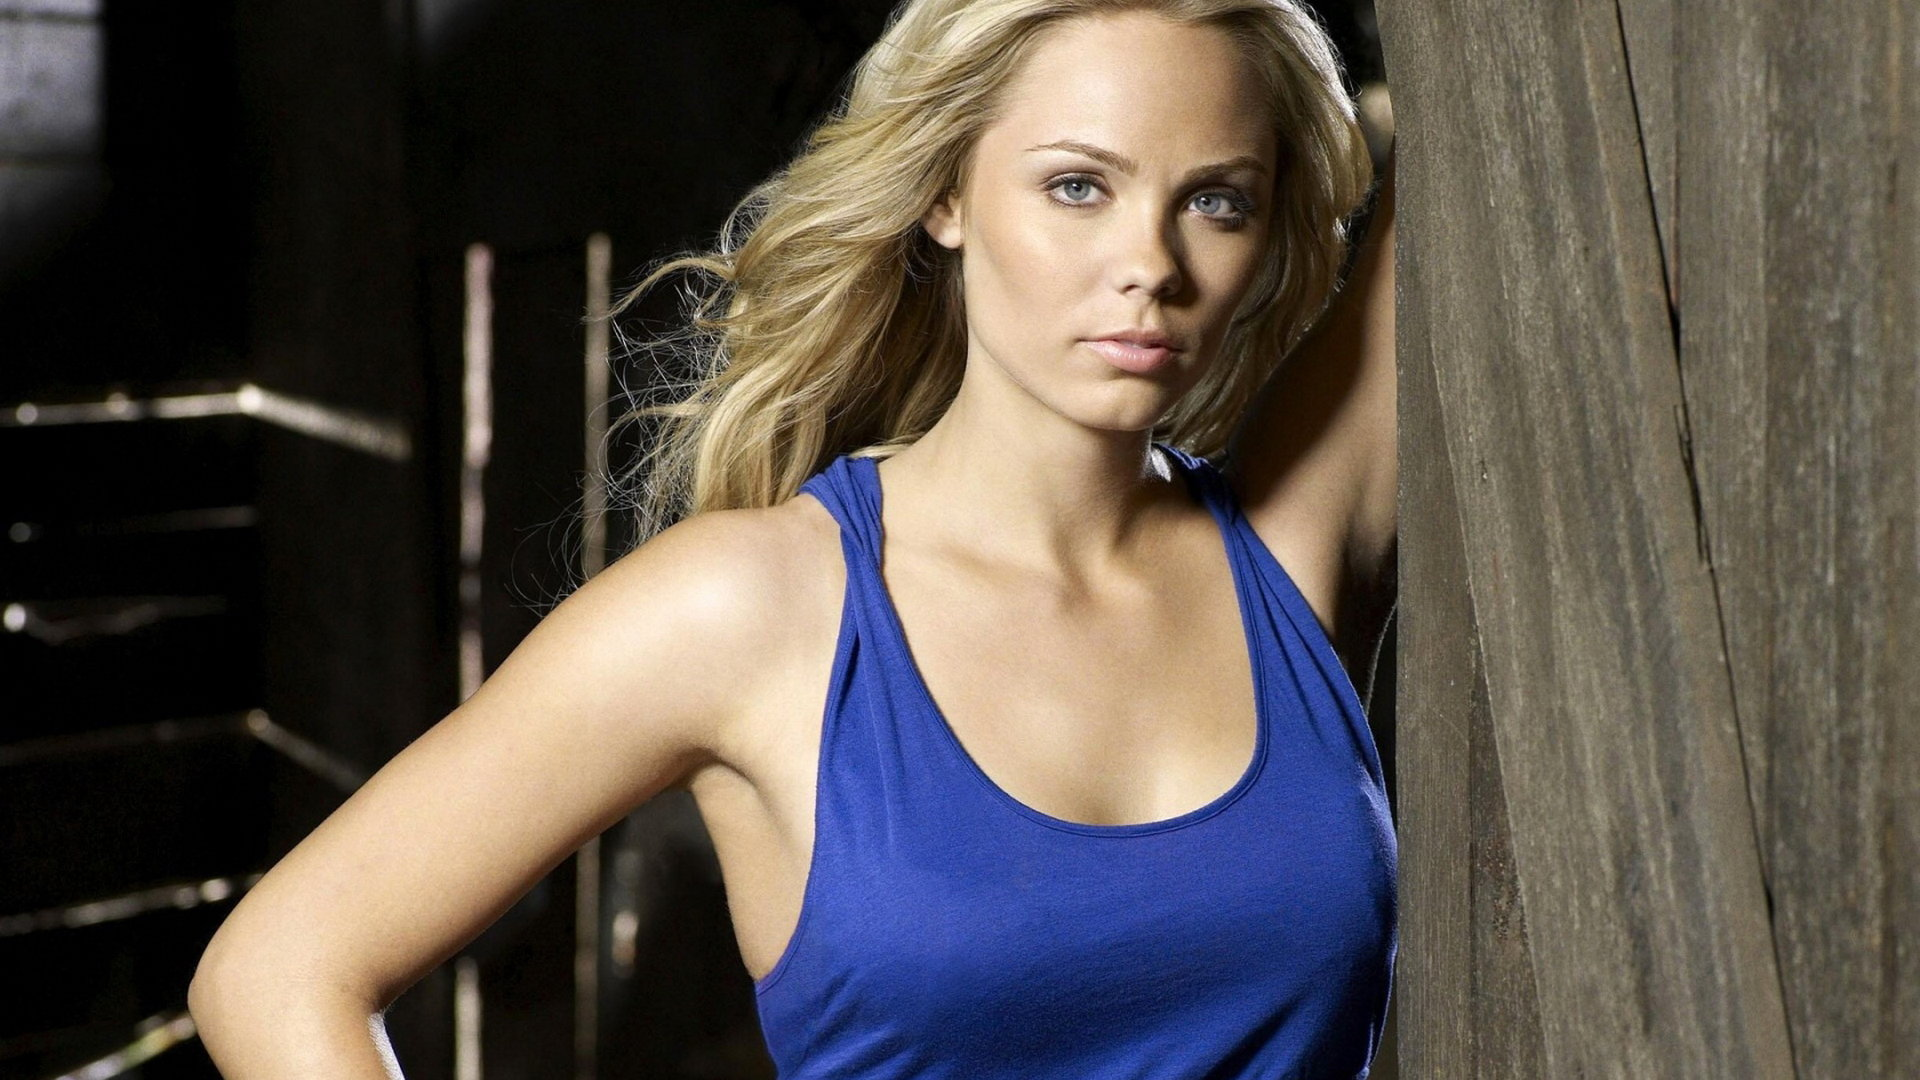 Awesome Laura Vandervoort free background ID:210305 for full hd 1920x1080 computer